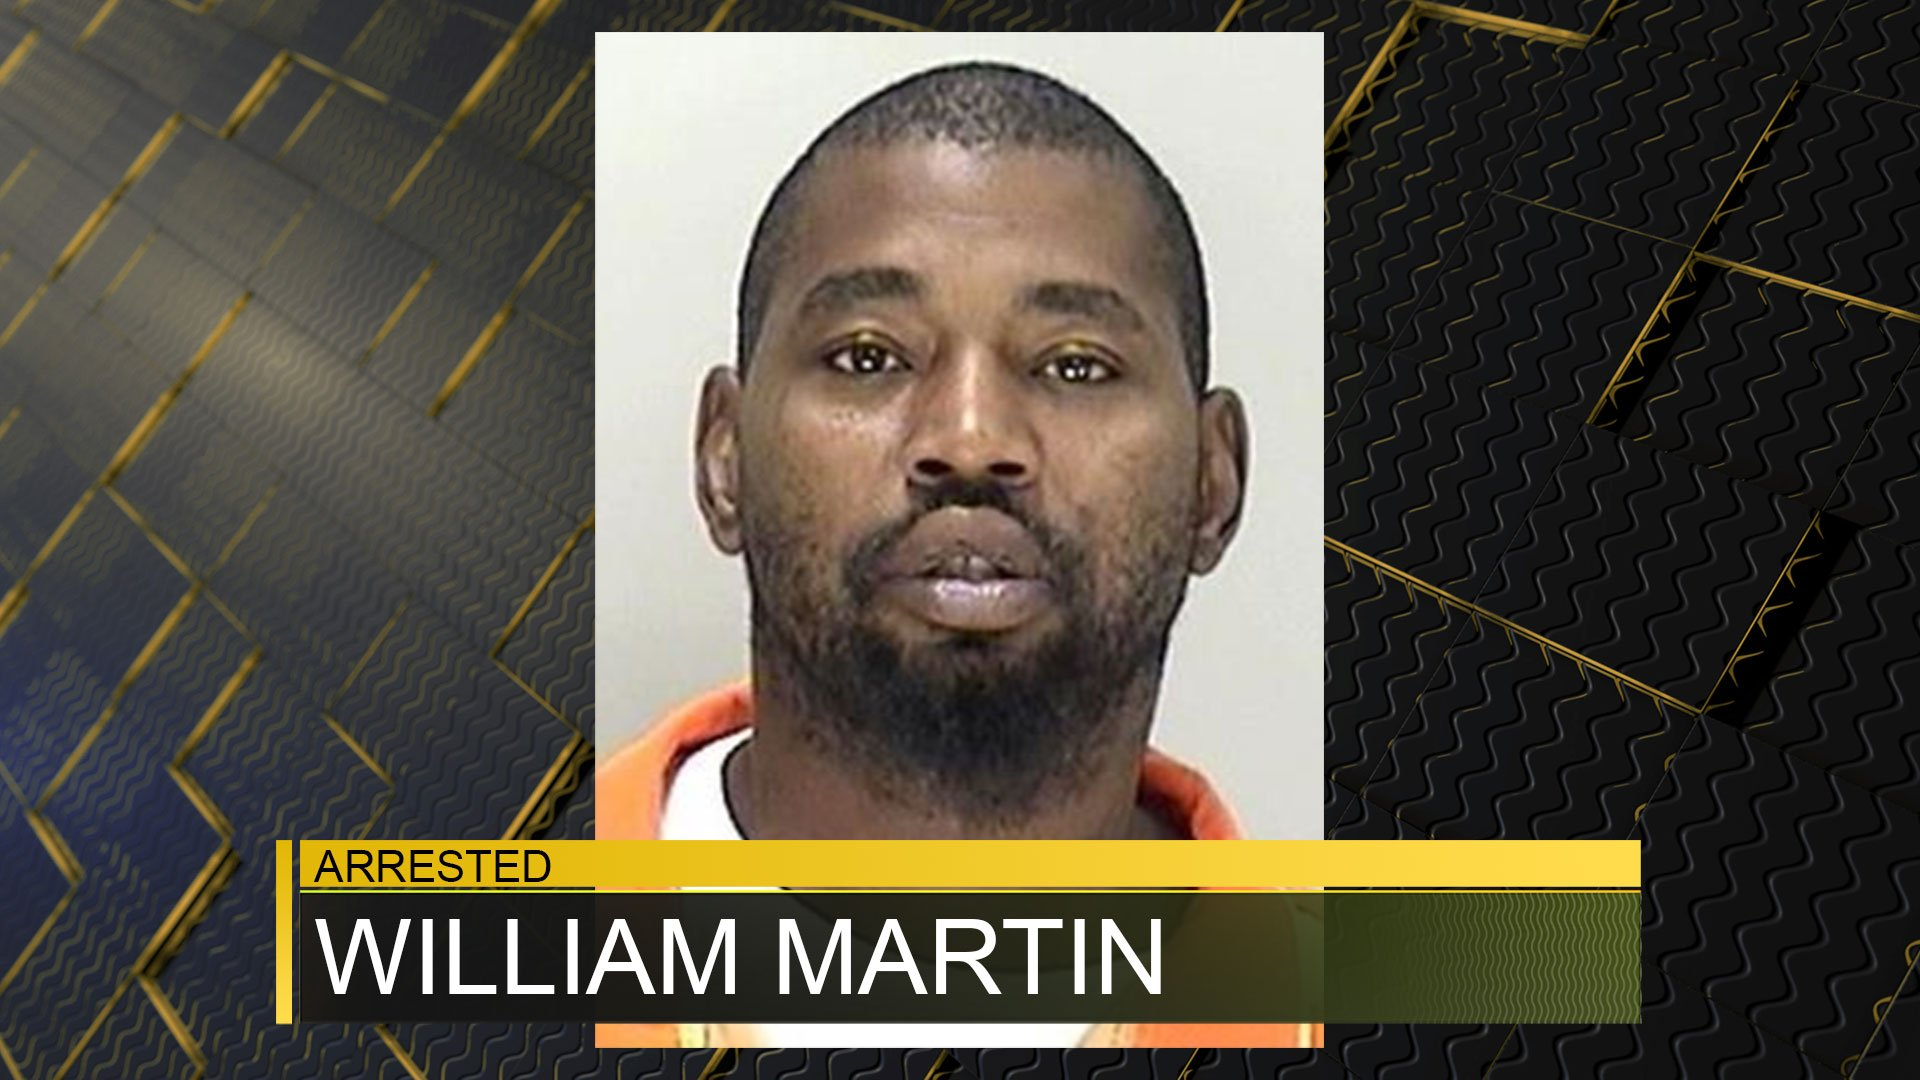 William Martin (Richmond County Sheriff's Office)